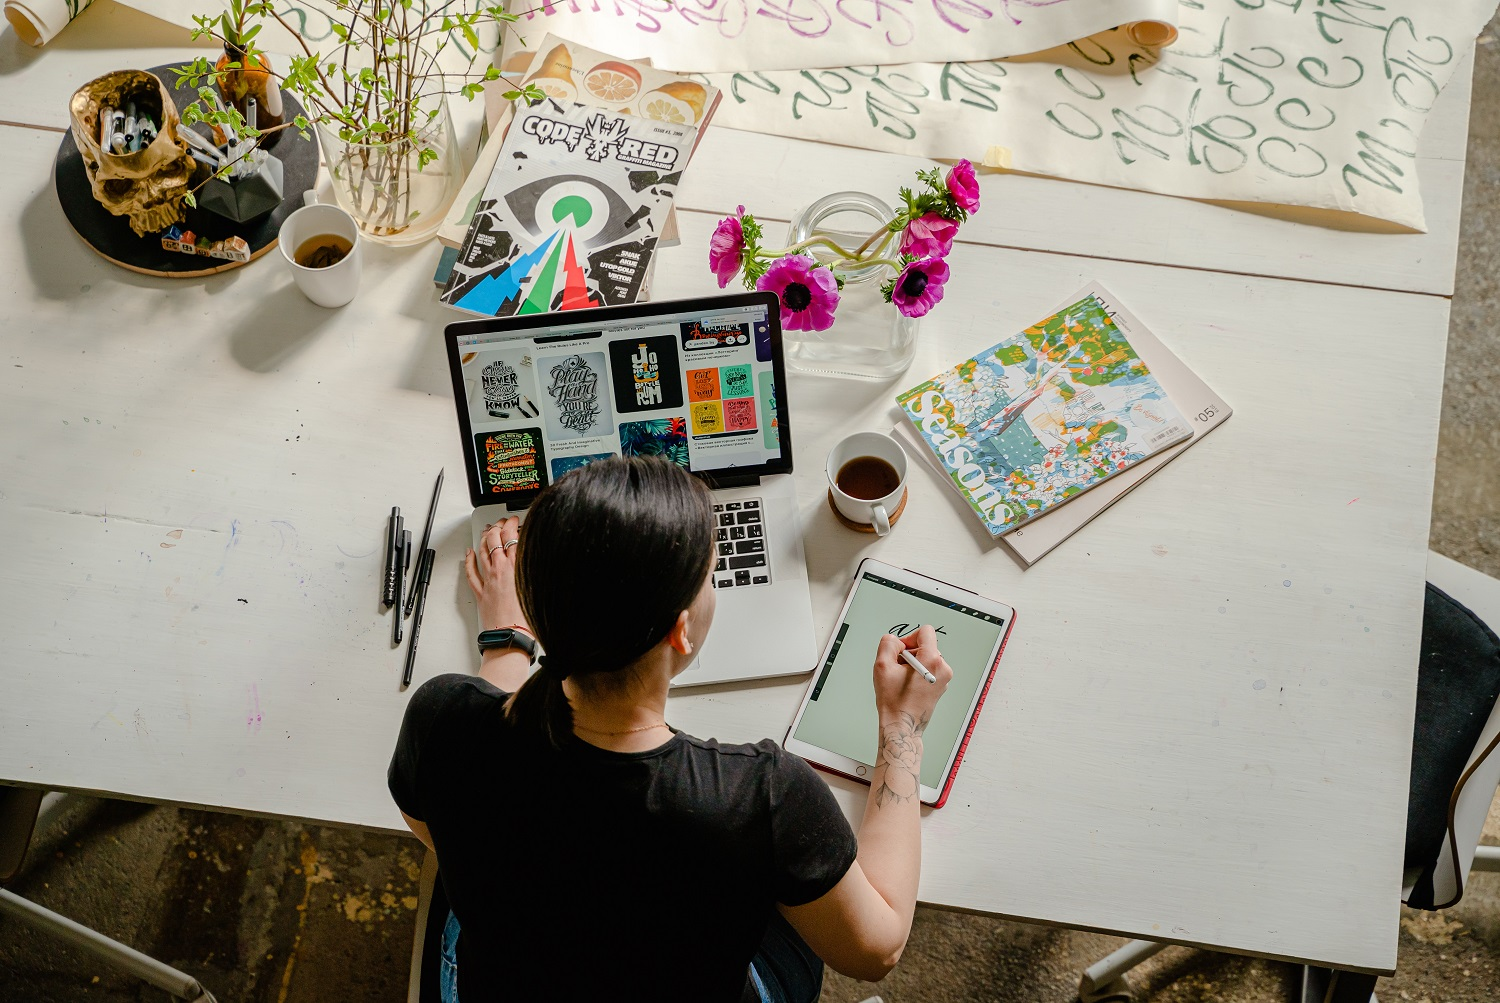 O-Time Online Painting Workshop is OPPO's Way of Spreading Fun and Positivity